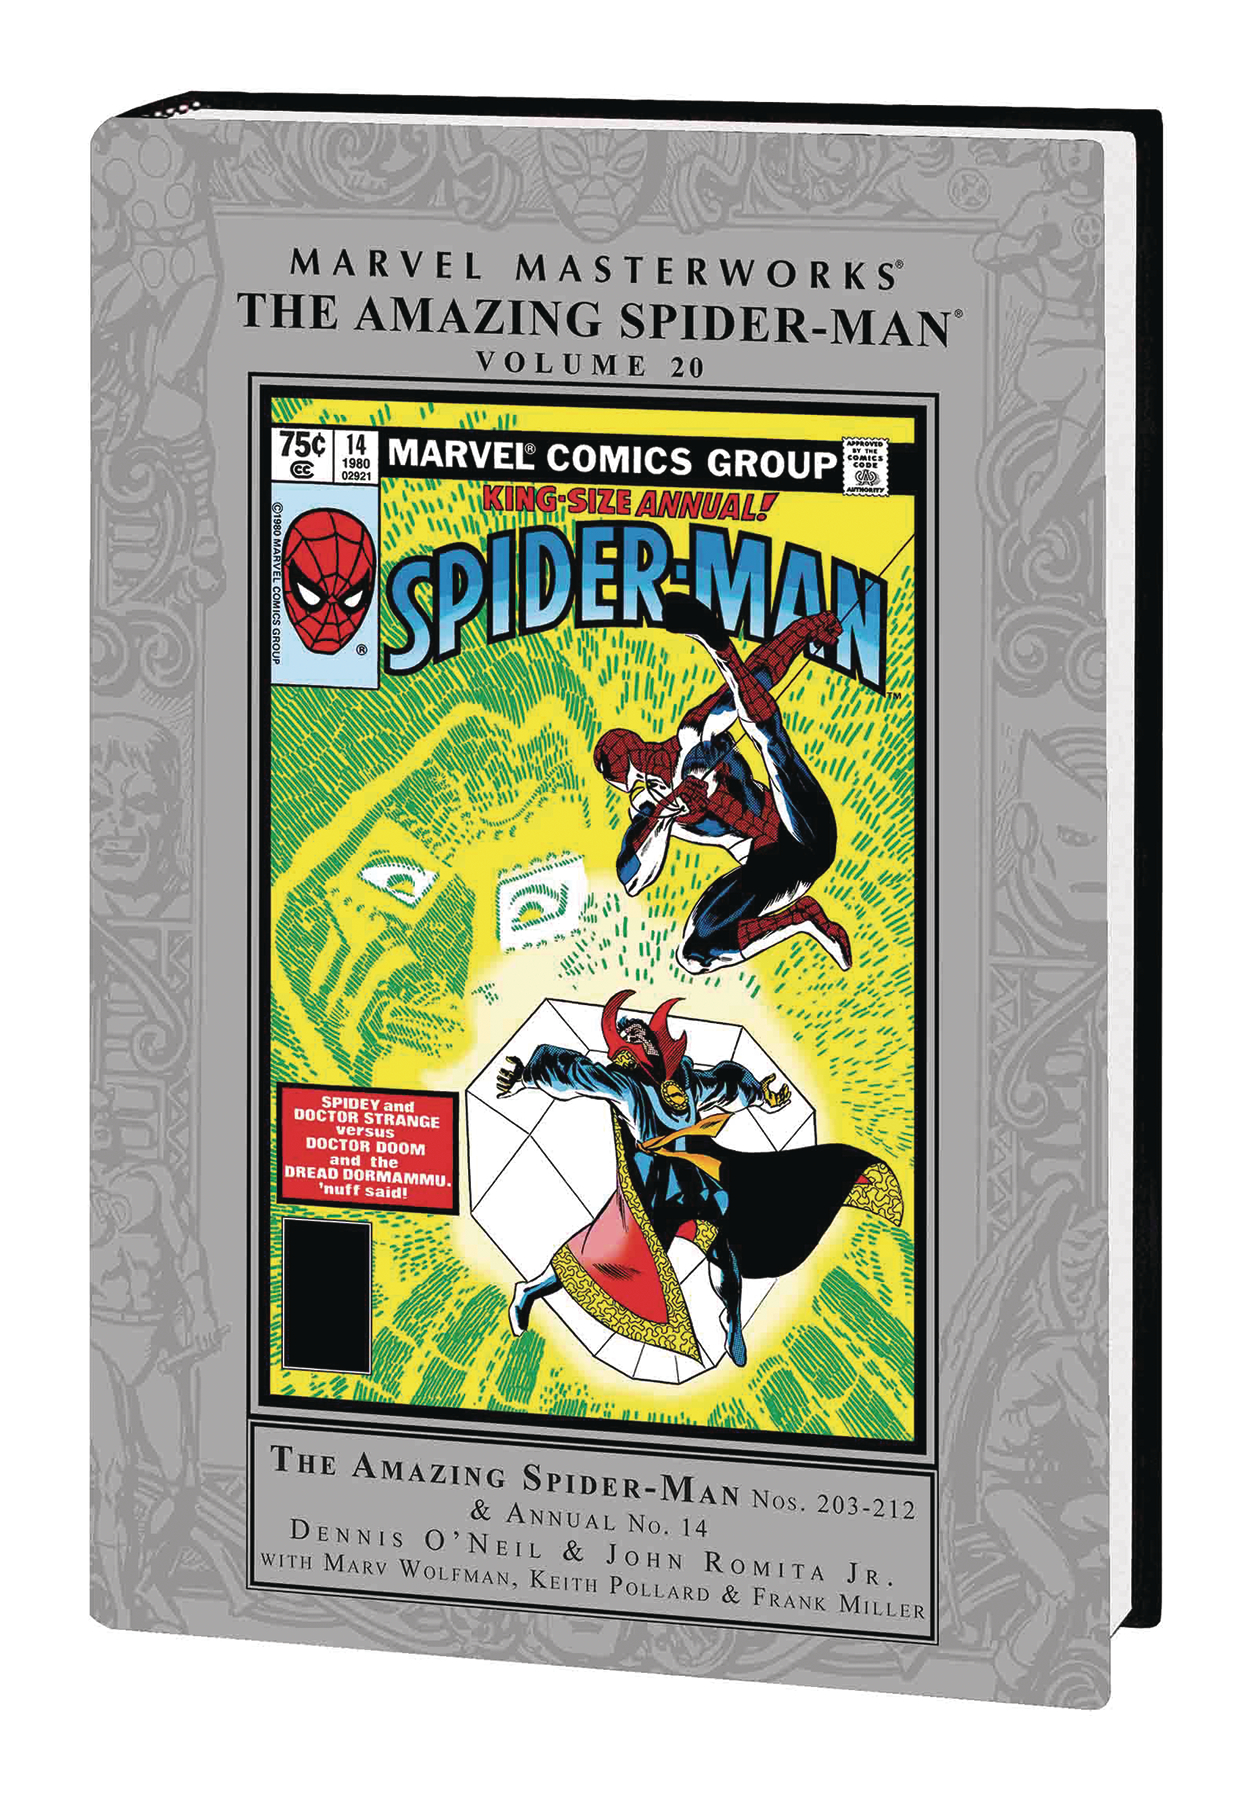 MMW AMAZING SPIDER-MAN HC VOL 20